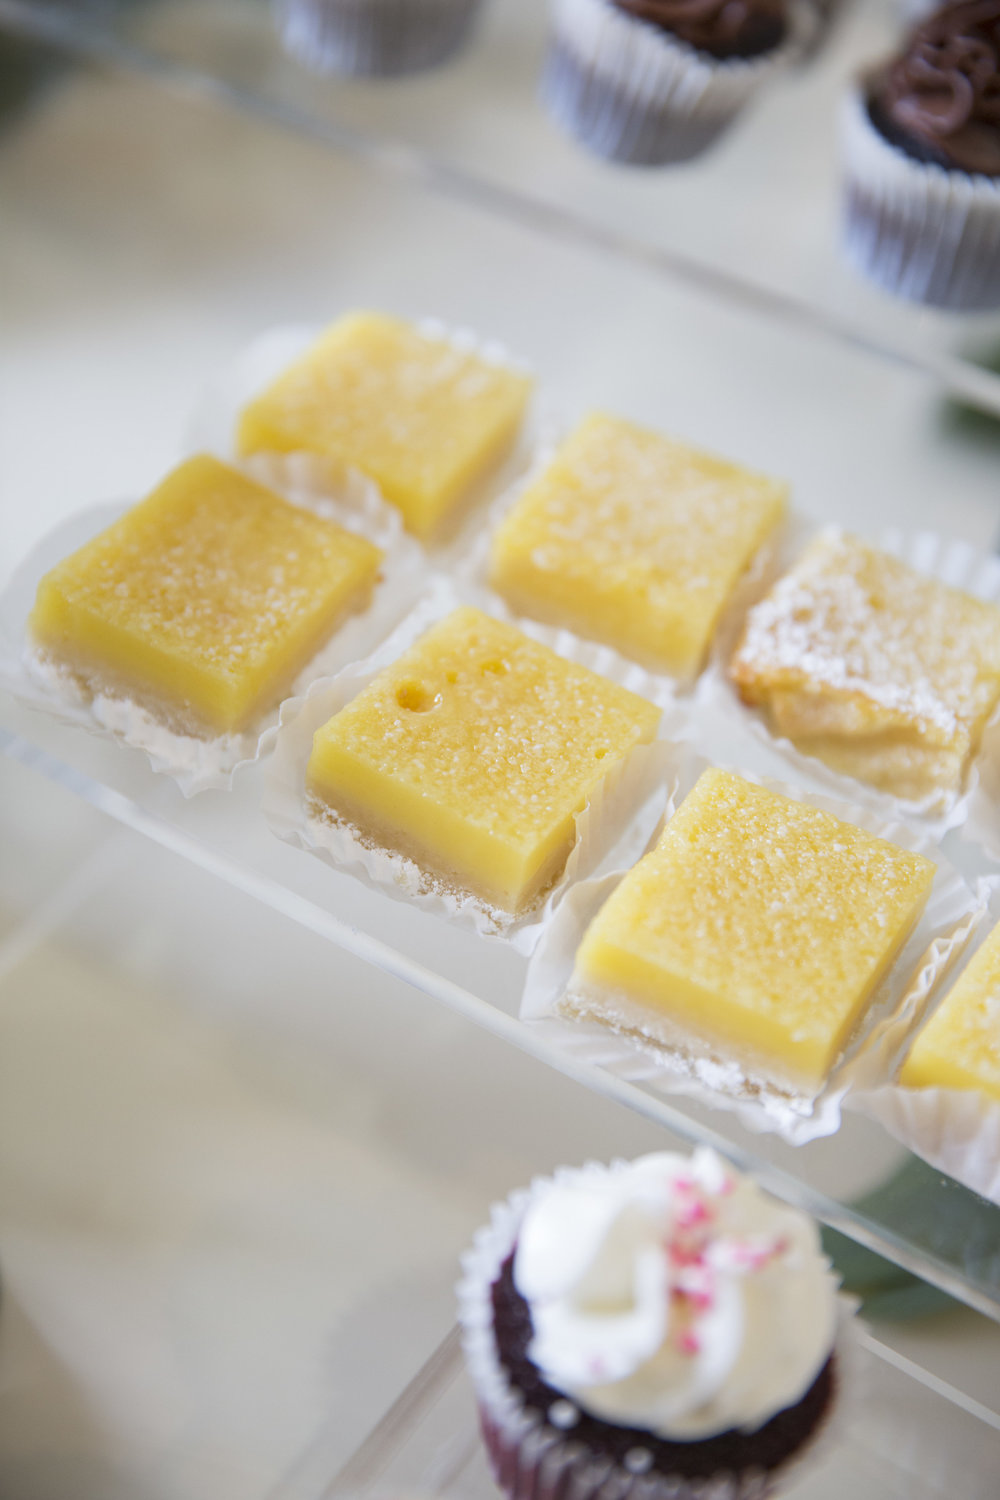 www.santabarbaraweddingstyle | dessert buffet | Dessert ideas | lemon bars | lele patisserie | Kristen Beinke Photography